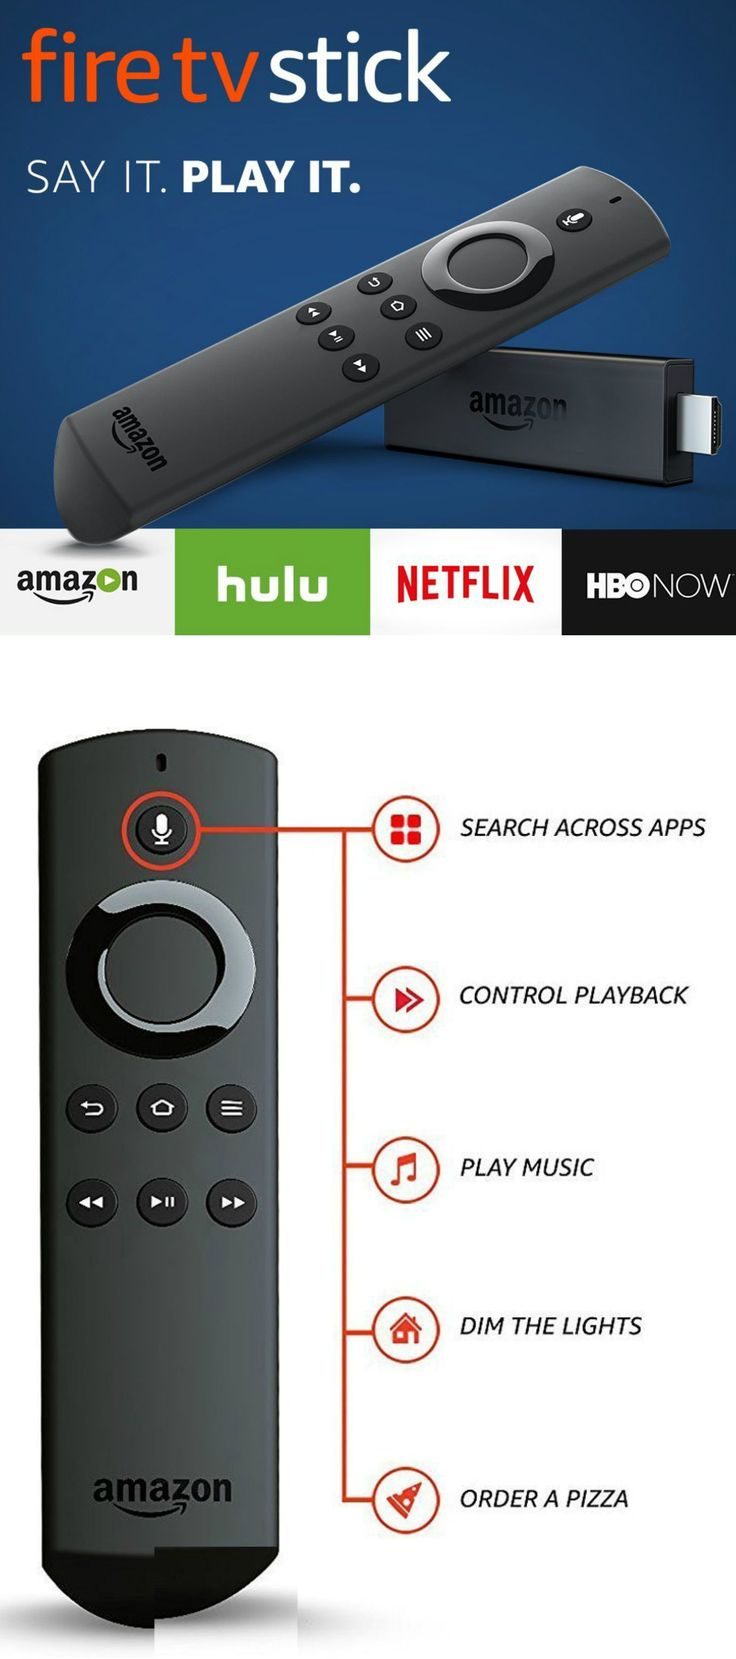 Fire TV Stick with Alexa Voice Remote Streaming Media Player Review With Fire TV Stick with Alexa Voice Remote Streaming Media Player you will enjoy tens of thousands of channels and apps, including Netflix, Hulu, HBO NOW, YouTube, Amazon Video, NBC, WatchESPN, Disney, and more! Alexa Voice Remote allows you to find the best way to watch across more than 190 channels and apps with universal